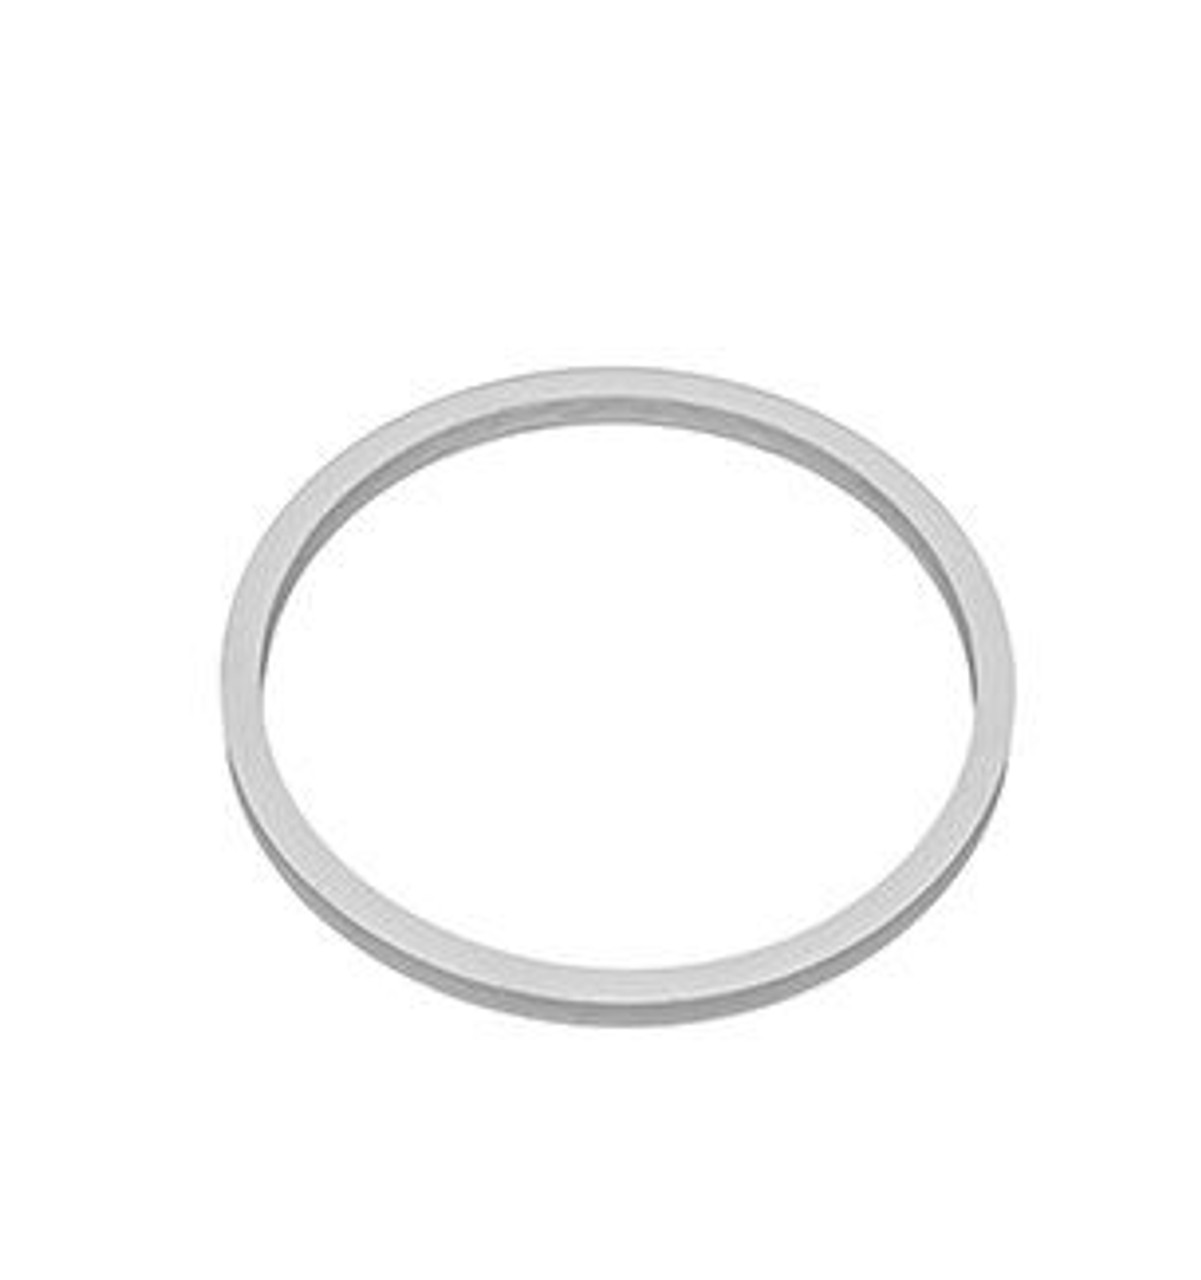 REPLACEMENT GASKETS FOR 2 INCH PLASTIC PLUG